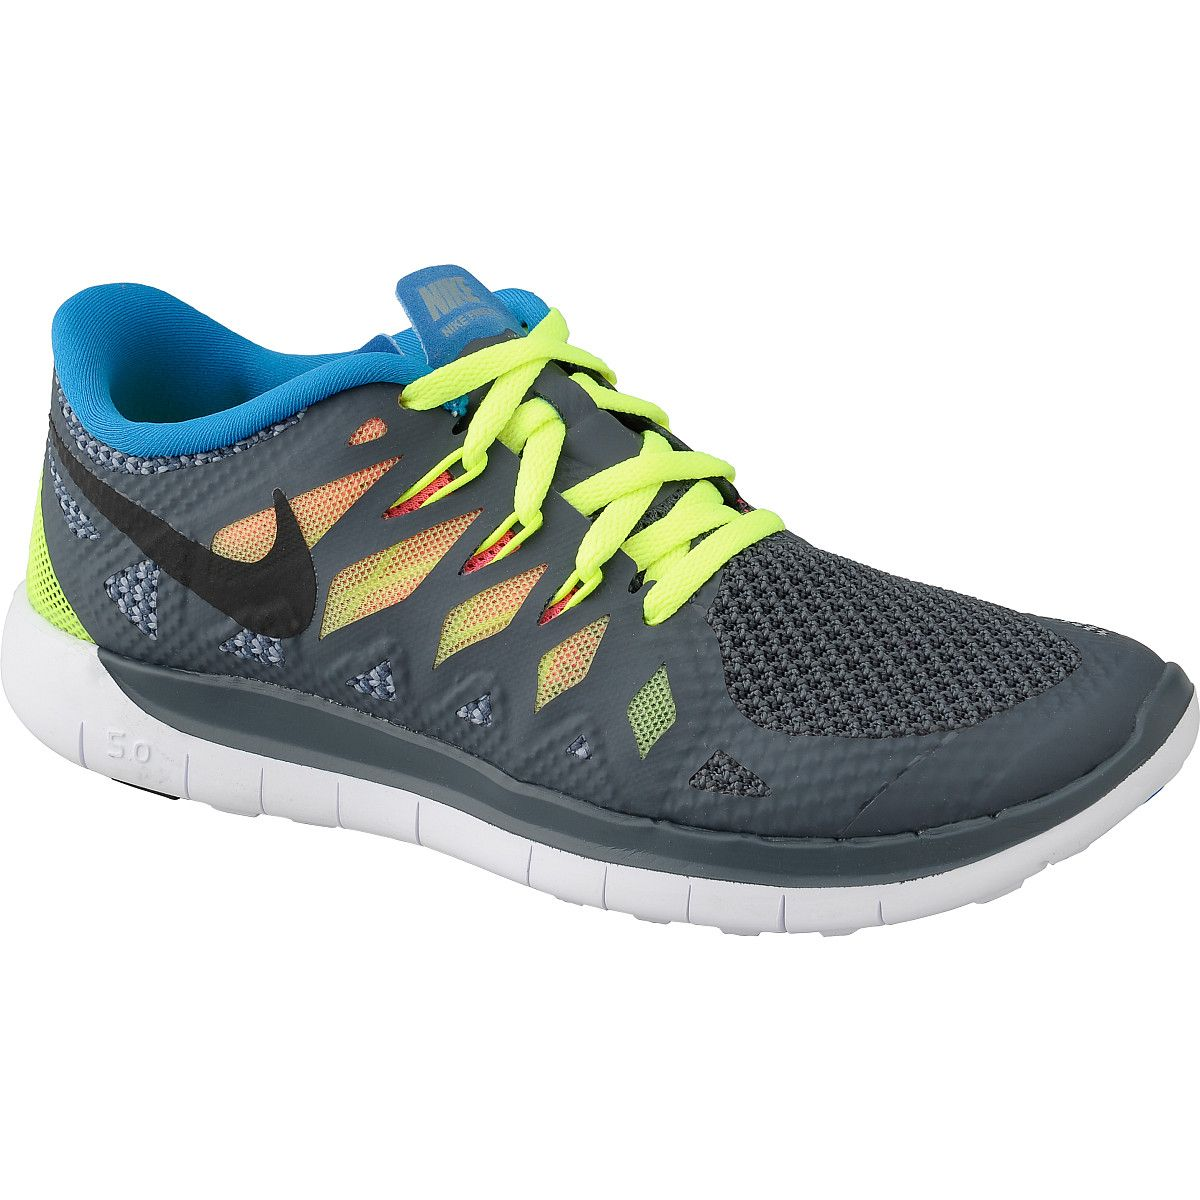 the best attitude 928ed d677c A great shoe for your kids - NIKE Boys  Free 5.0 Running Shoes - and